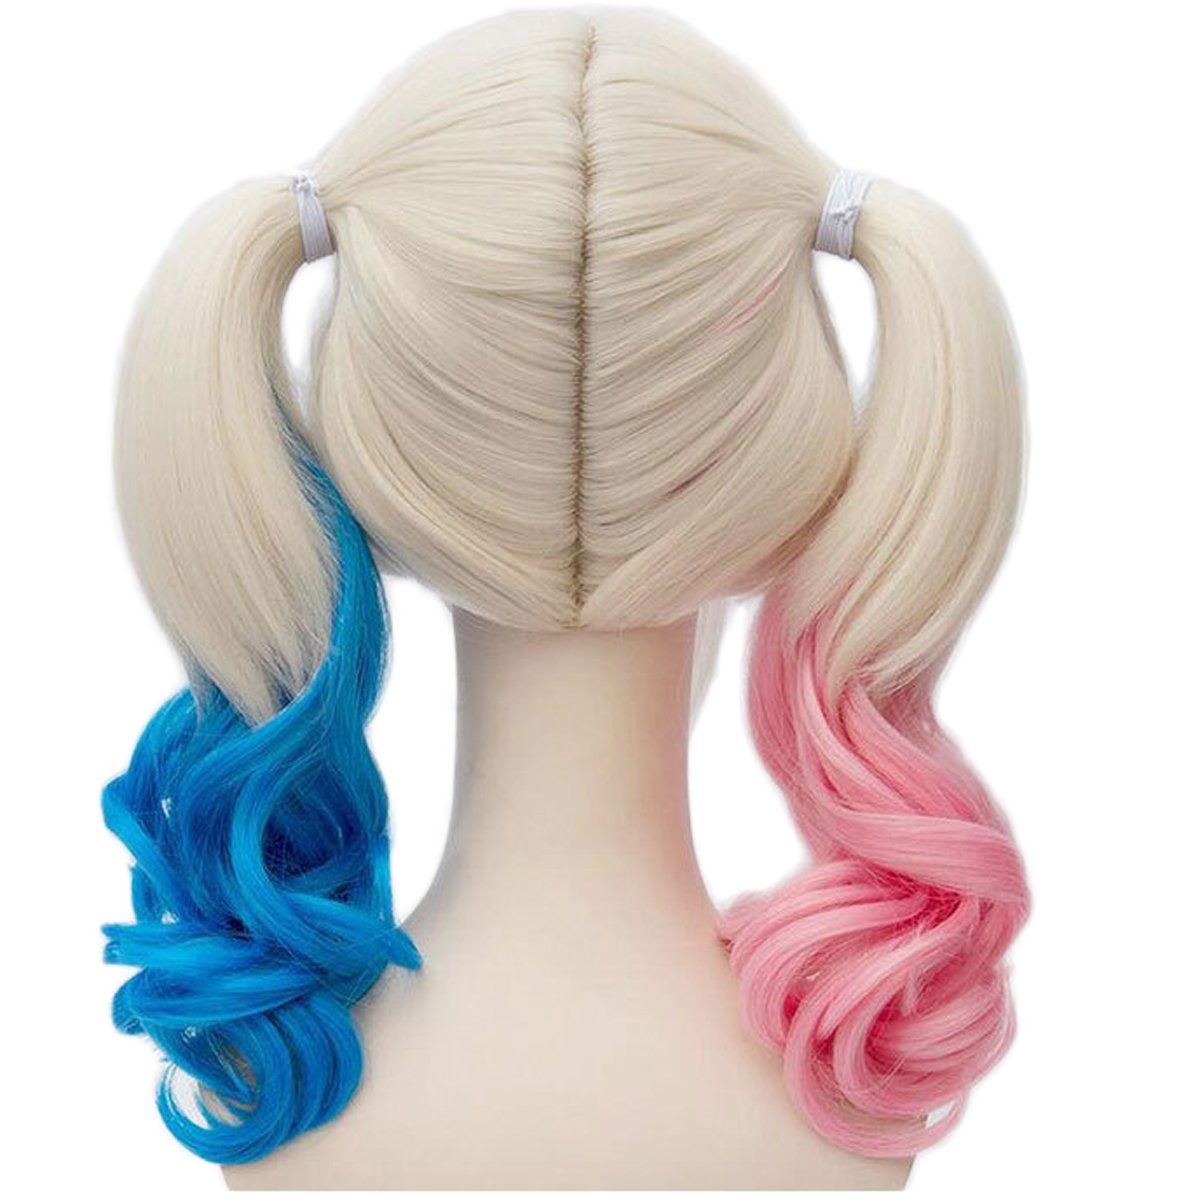 Amazon.com : Deifor Two Braids Hair Wigs for Suicide Squad Harley Quinn Cosplay Costume Wigs (Pink Blue Blonde) : Beauty